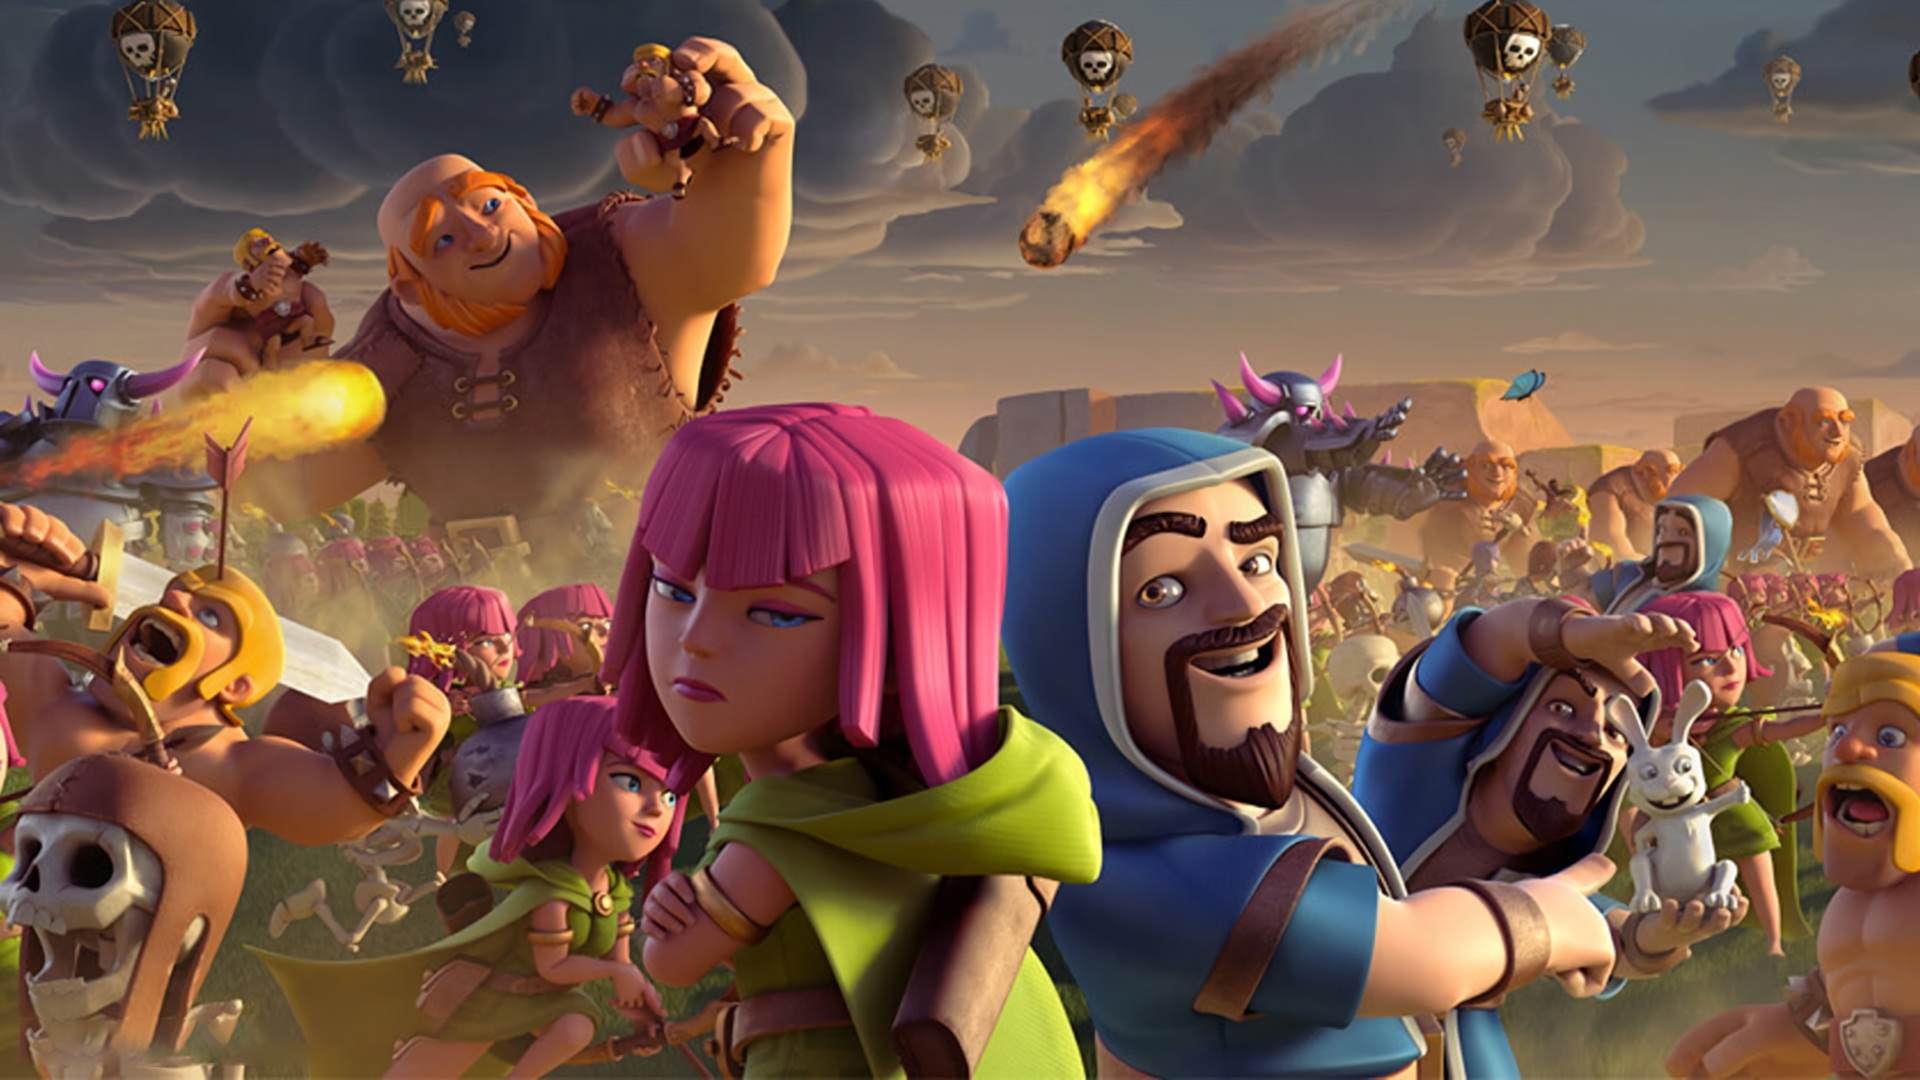 10 Best Clash Of Clans Wallpapers Hd FULL HD 1080p For PC Background